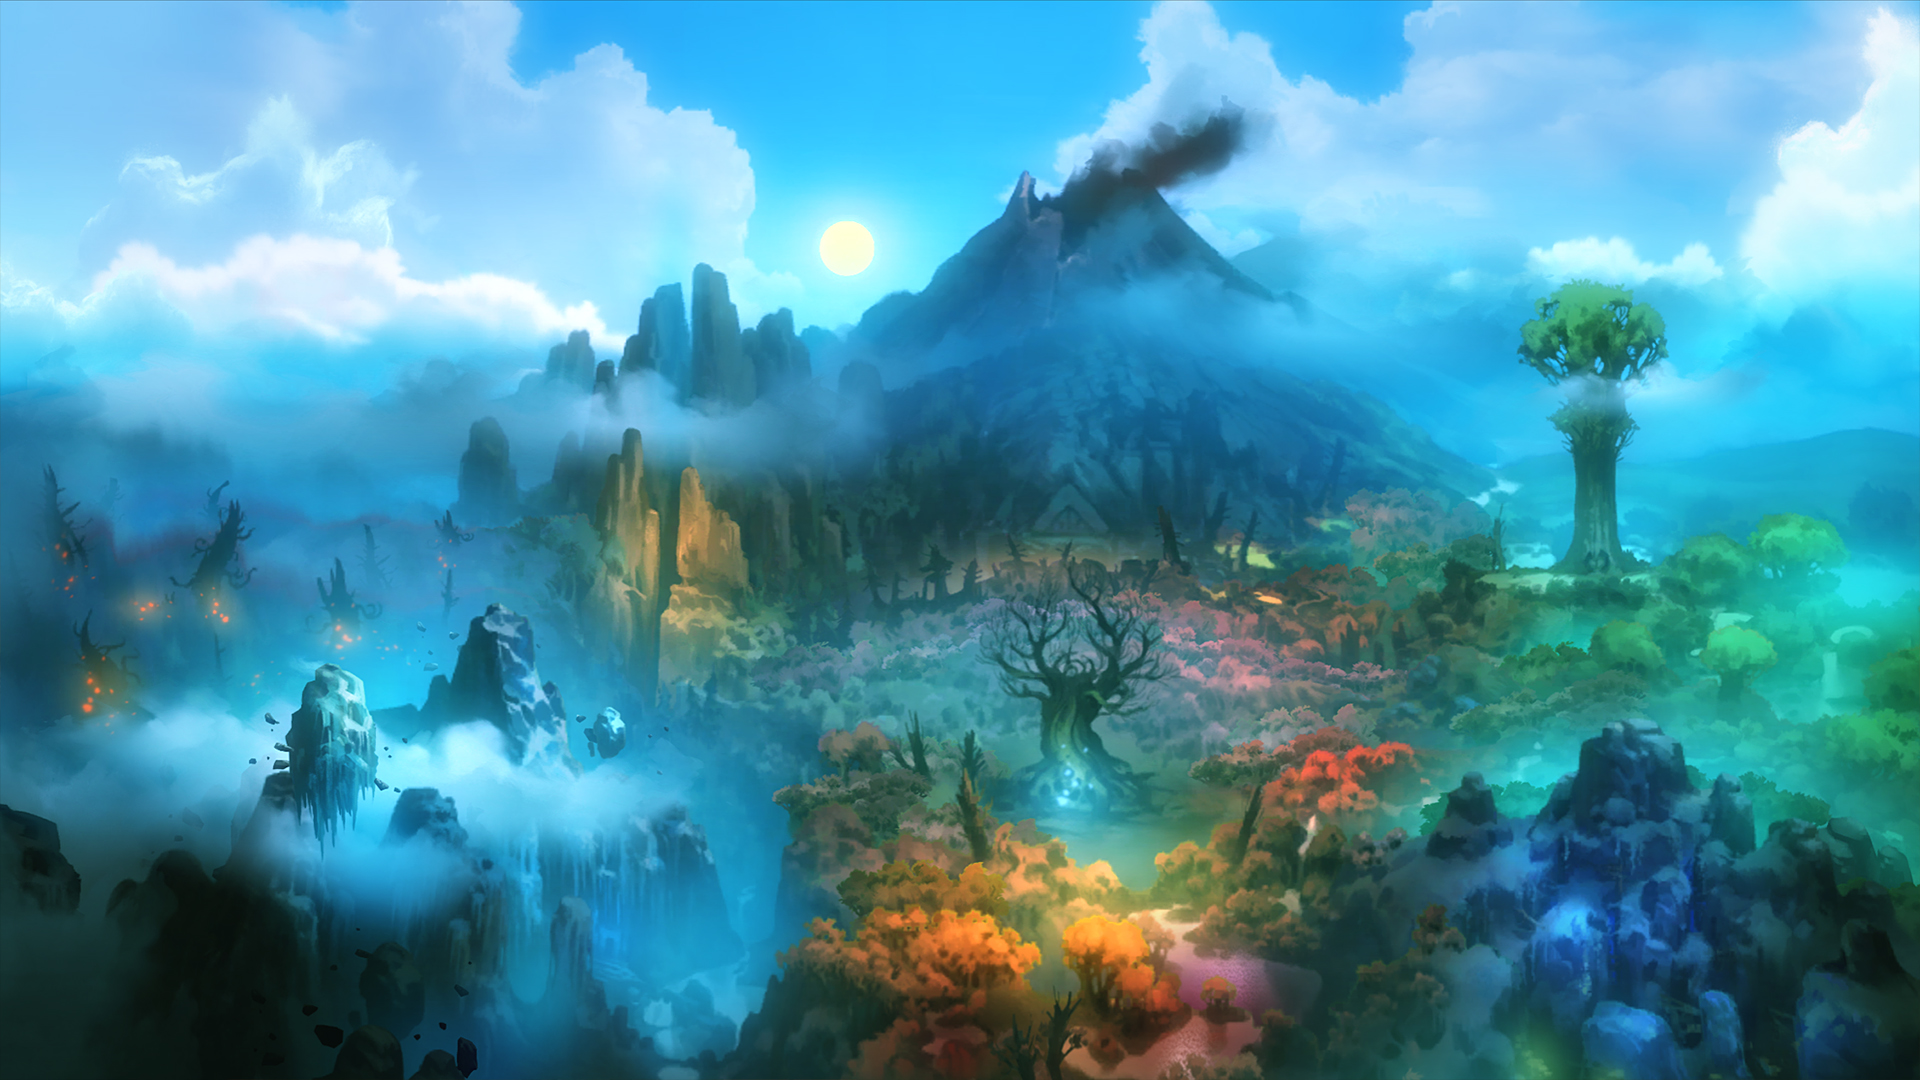 Wonderful Ori And The Blind Forest Wallpaper